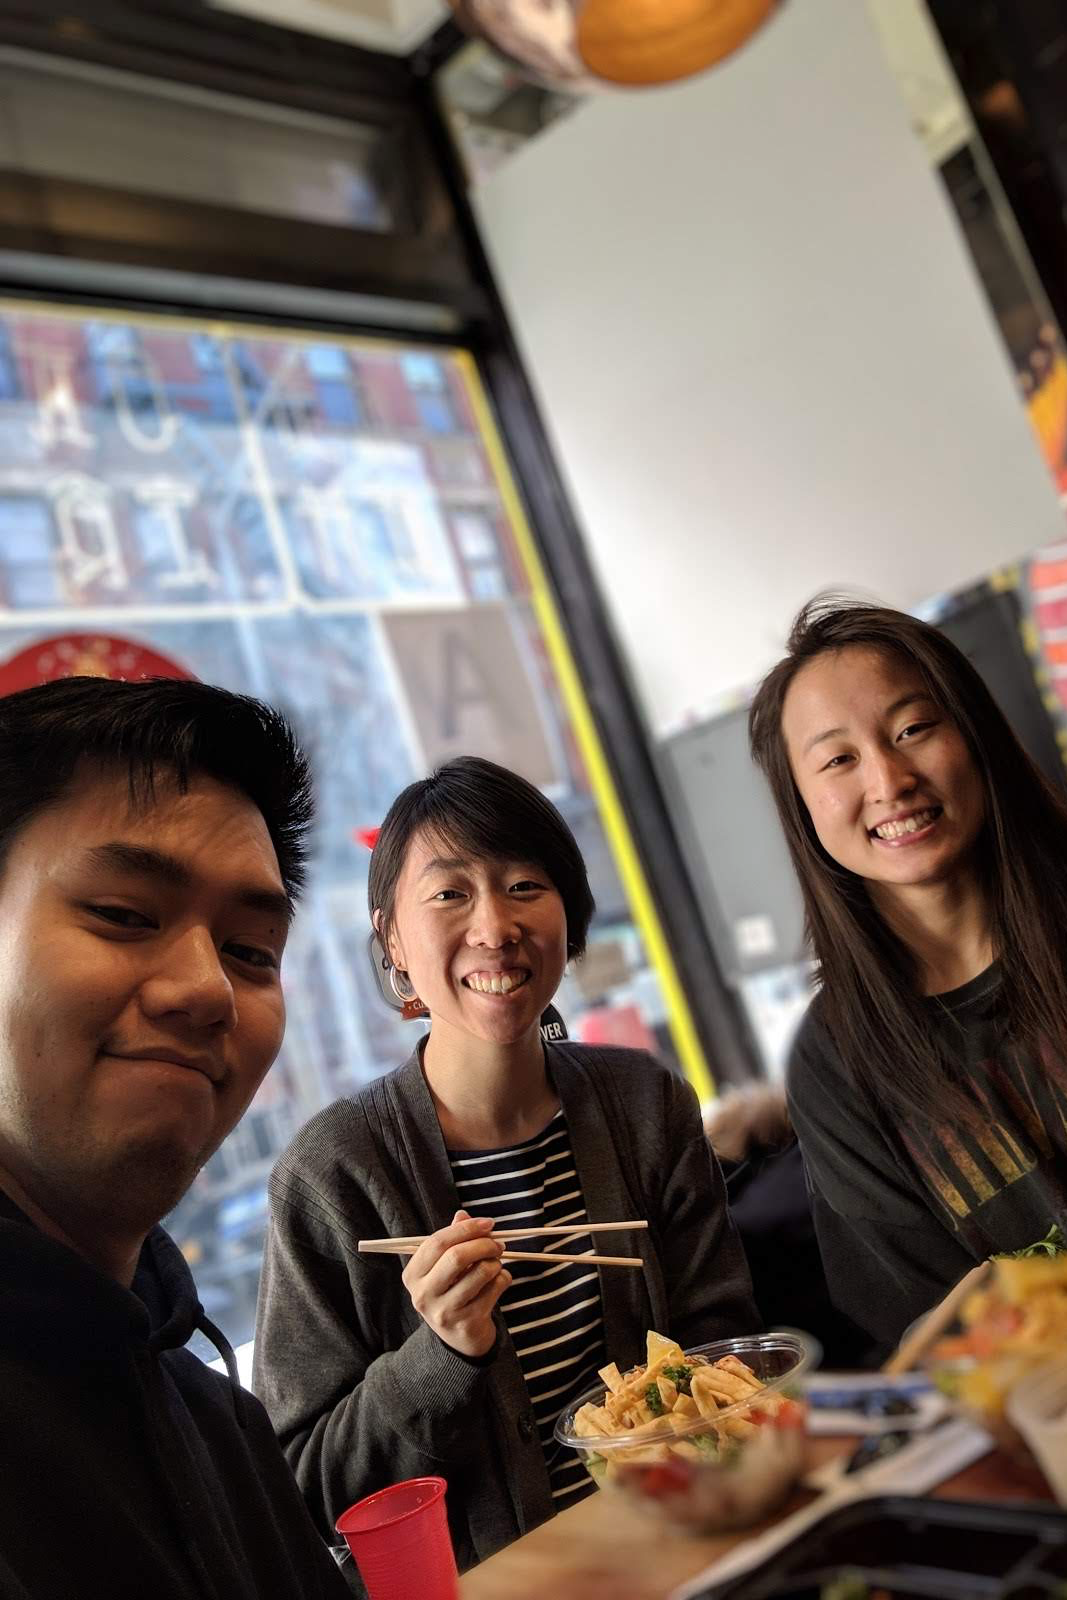 Lunch w/ friends at  Simple ! My favorite poke spot in NYC